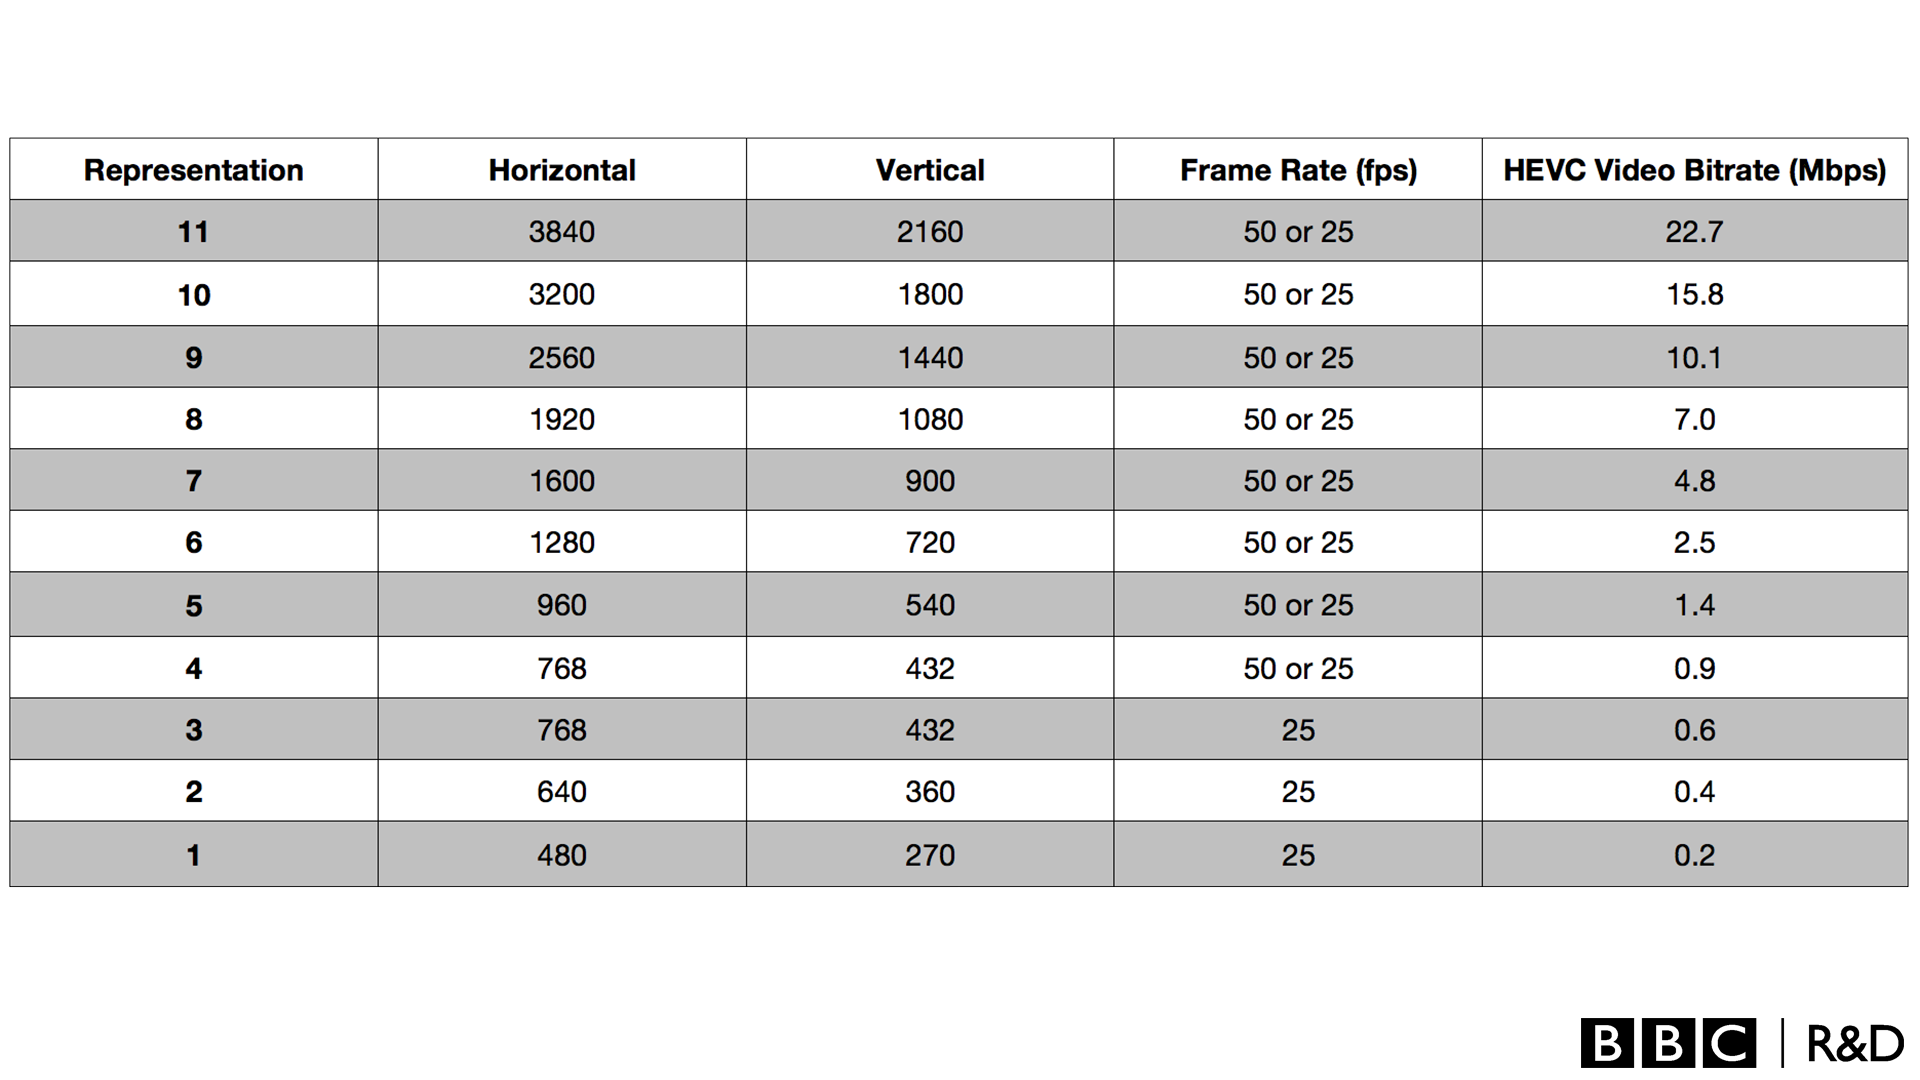 A table showing the different encoding representations and the resolutions, frame rate and bit rate for each.